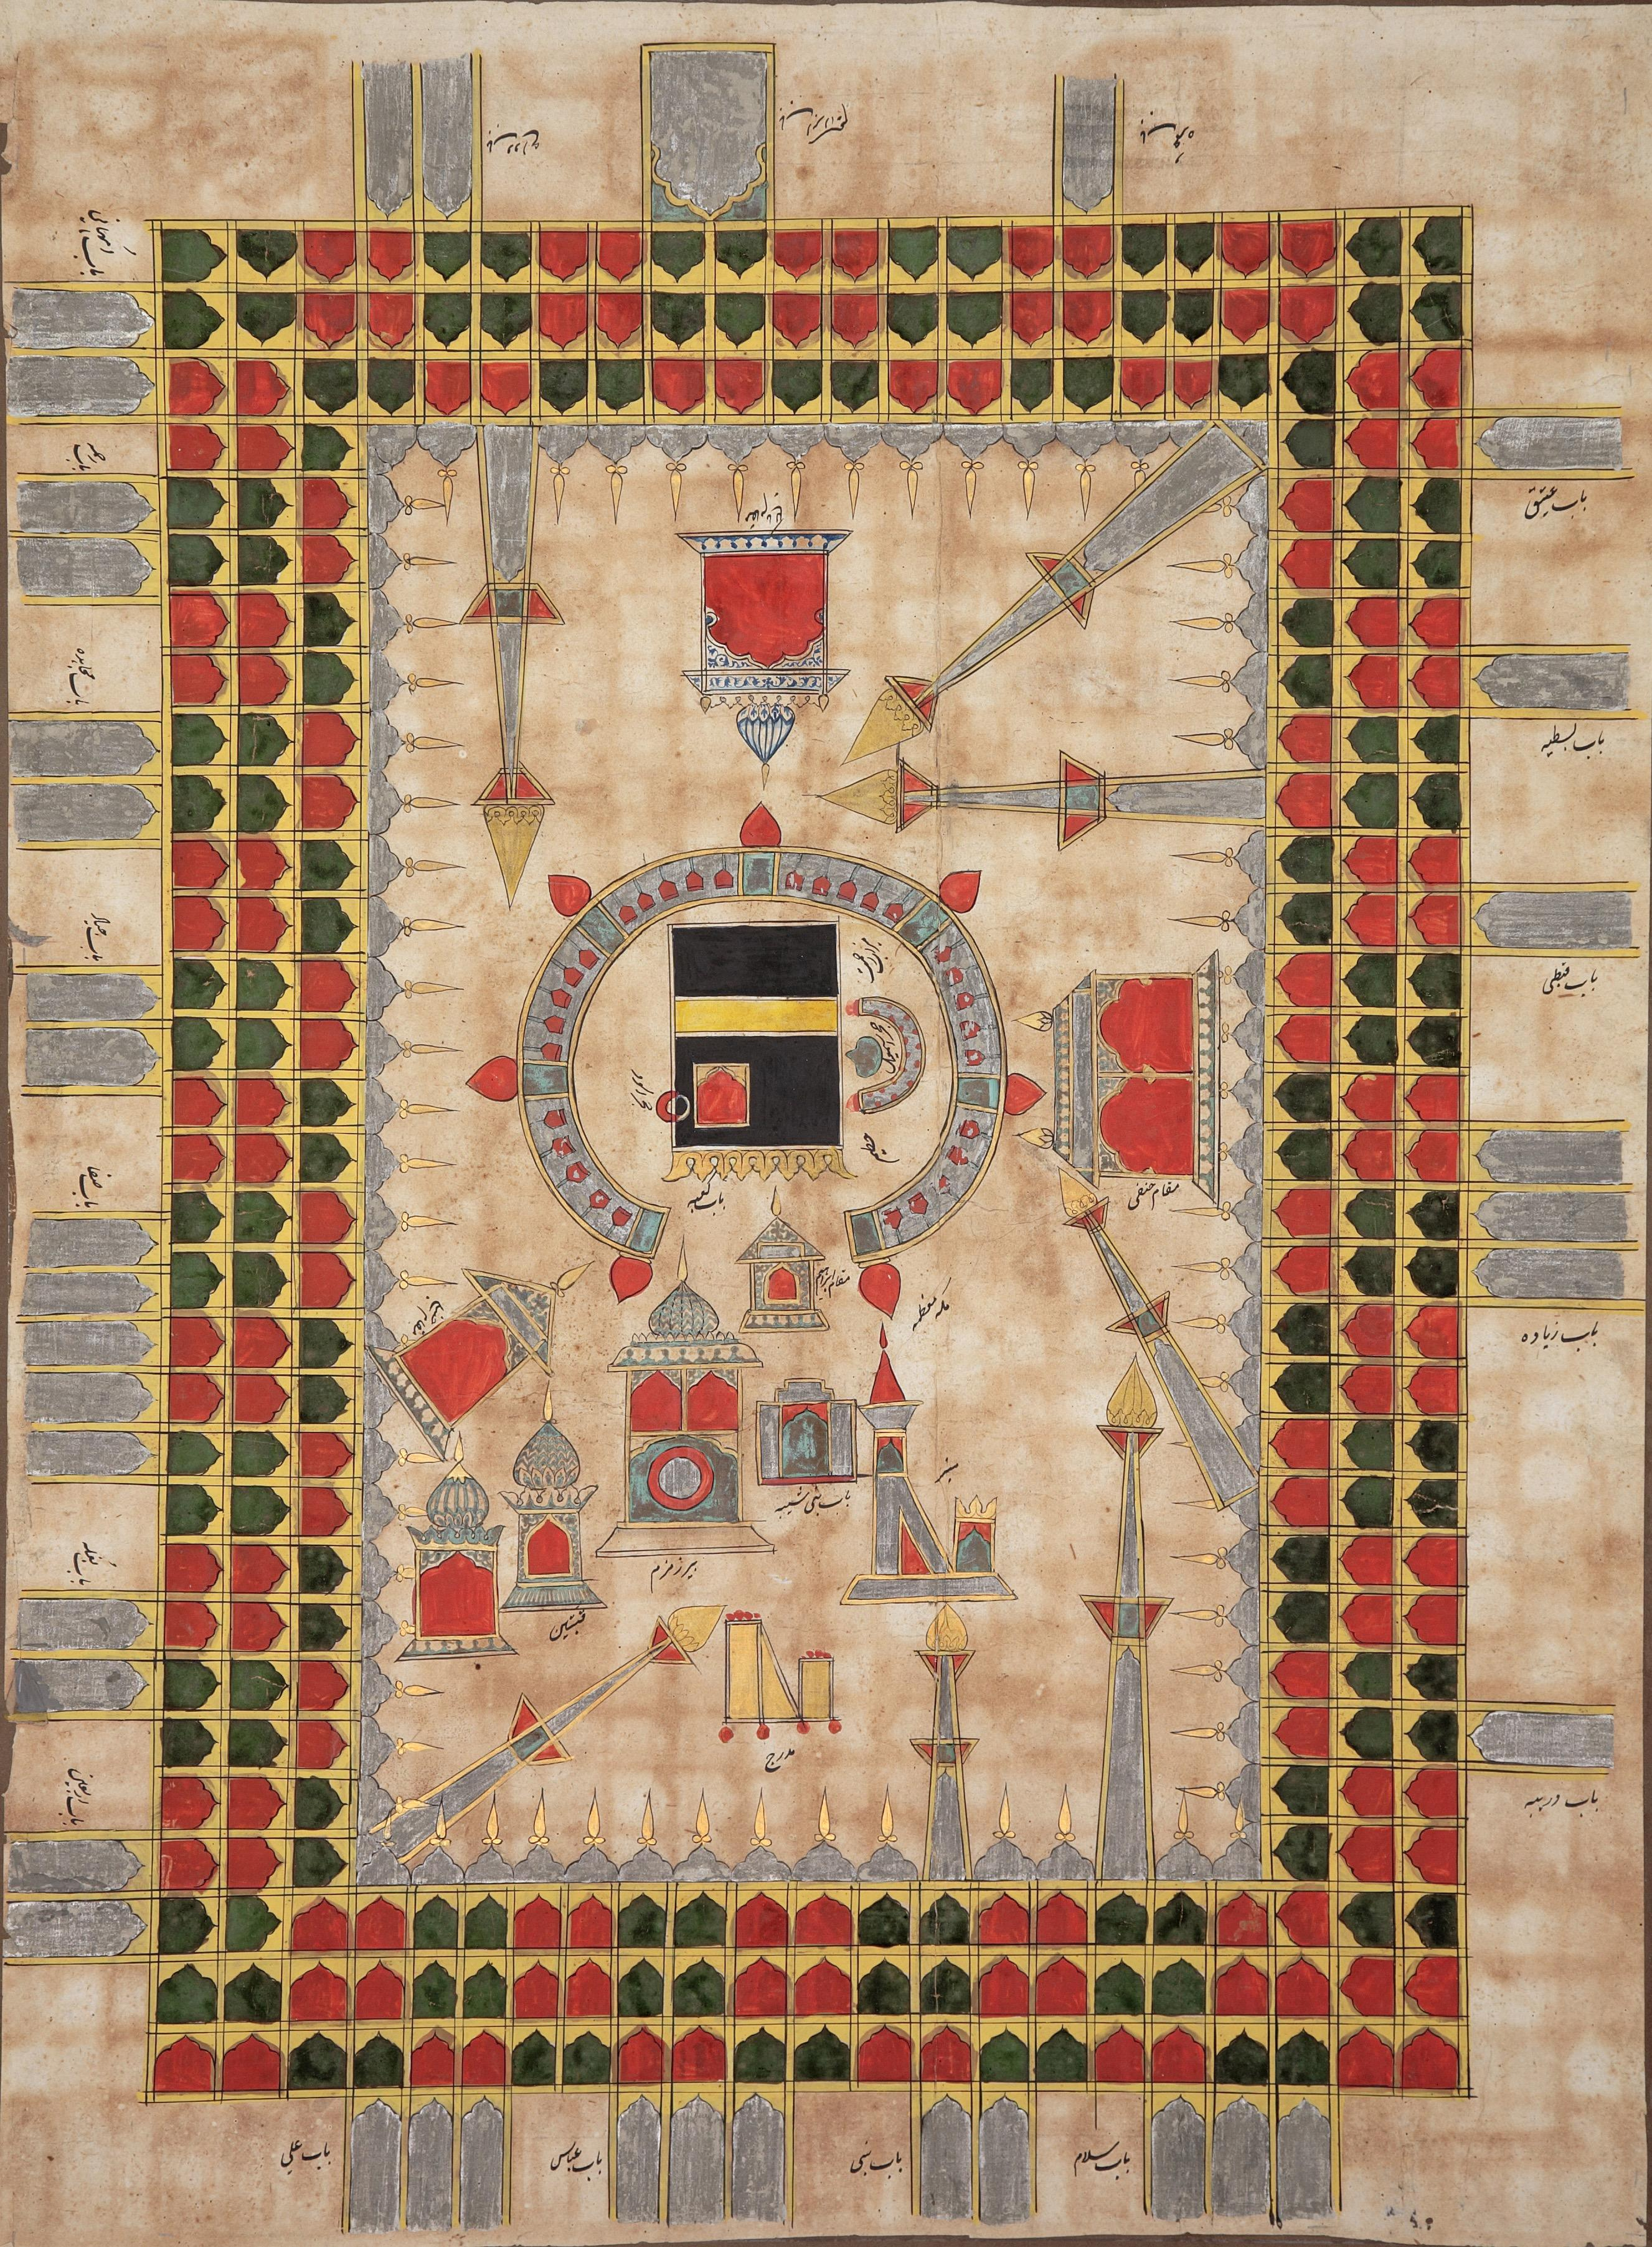 Mecca depicted in a pilgrimage scroll